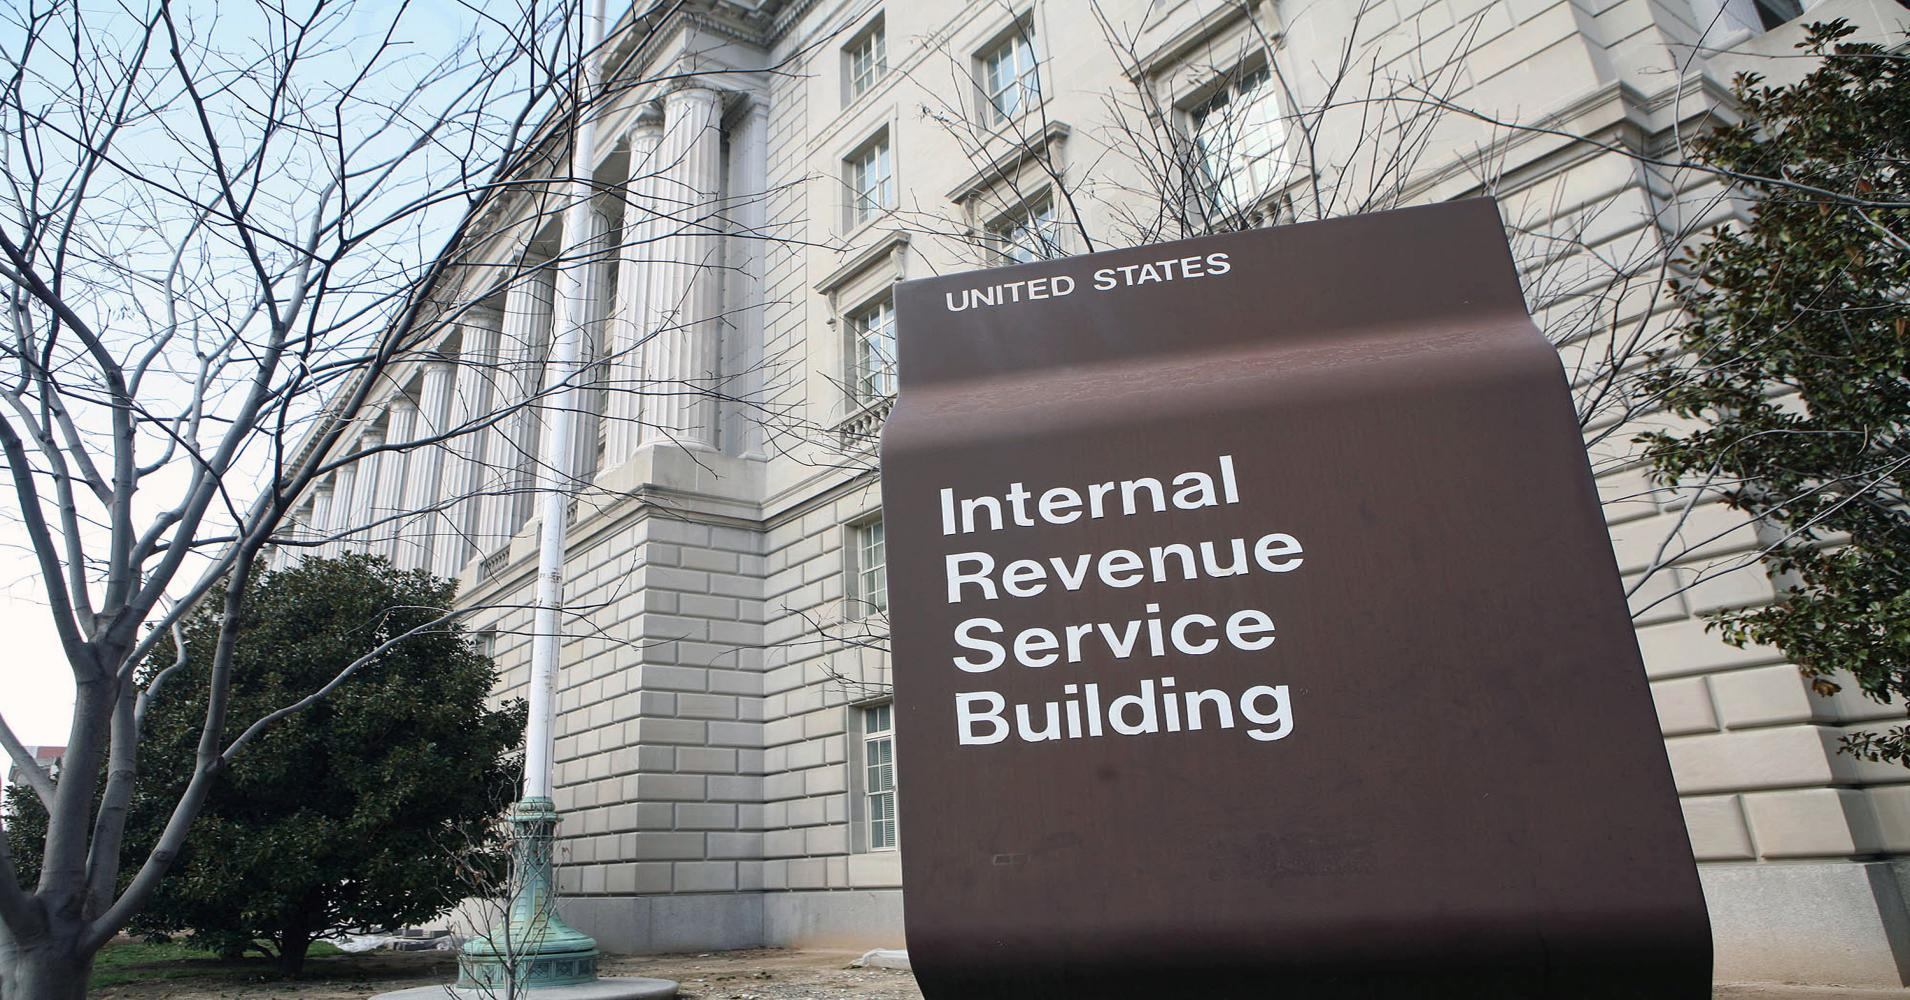 IRS OFFICE